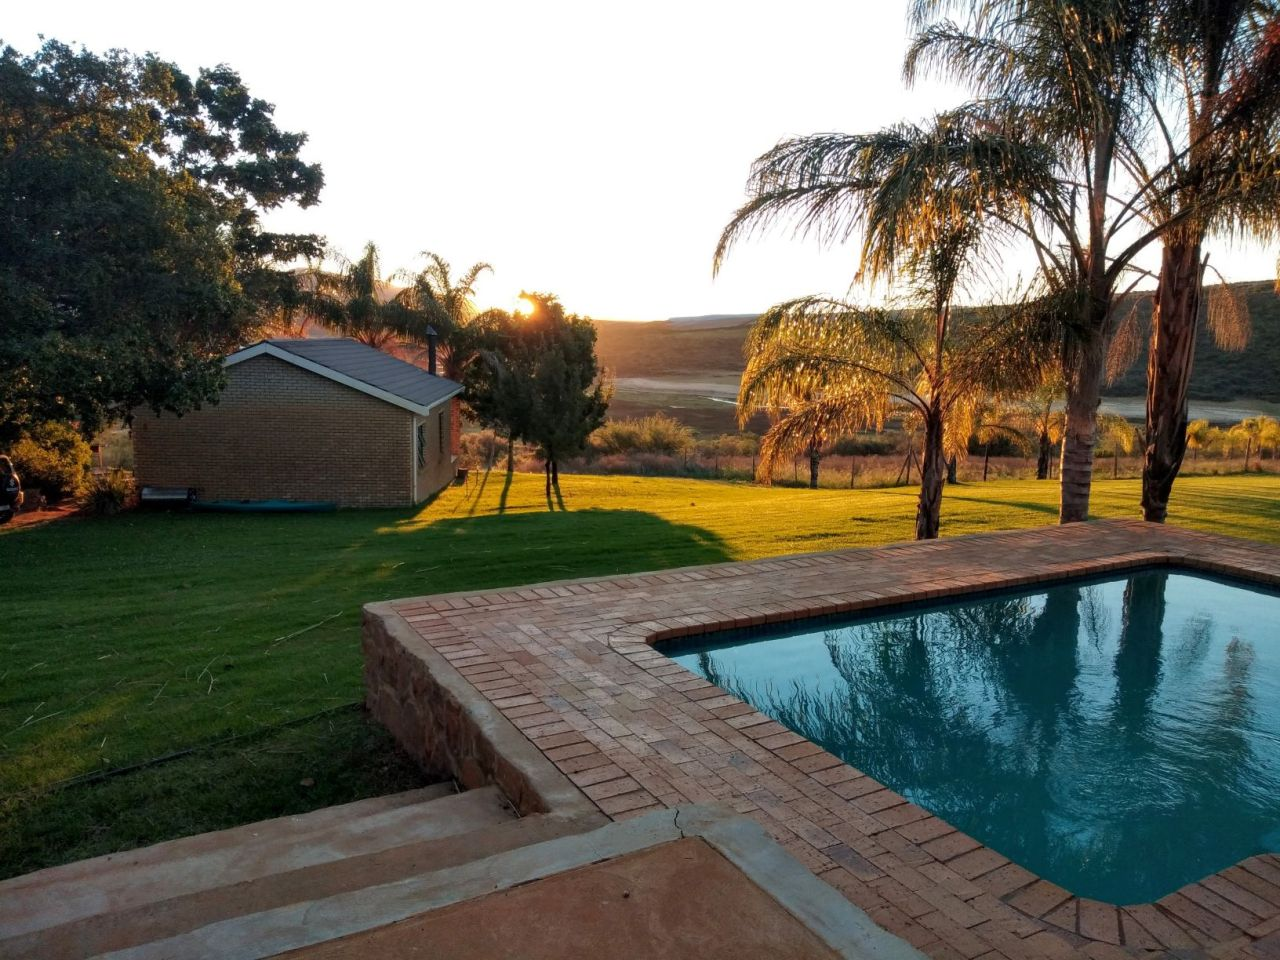 RONDEGAT WEEKEND (Day1)